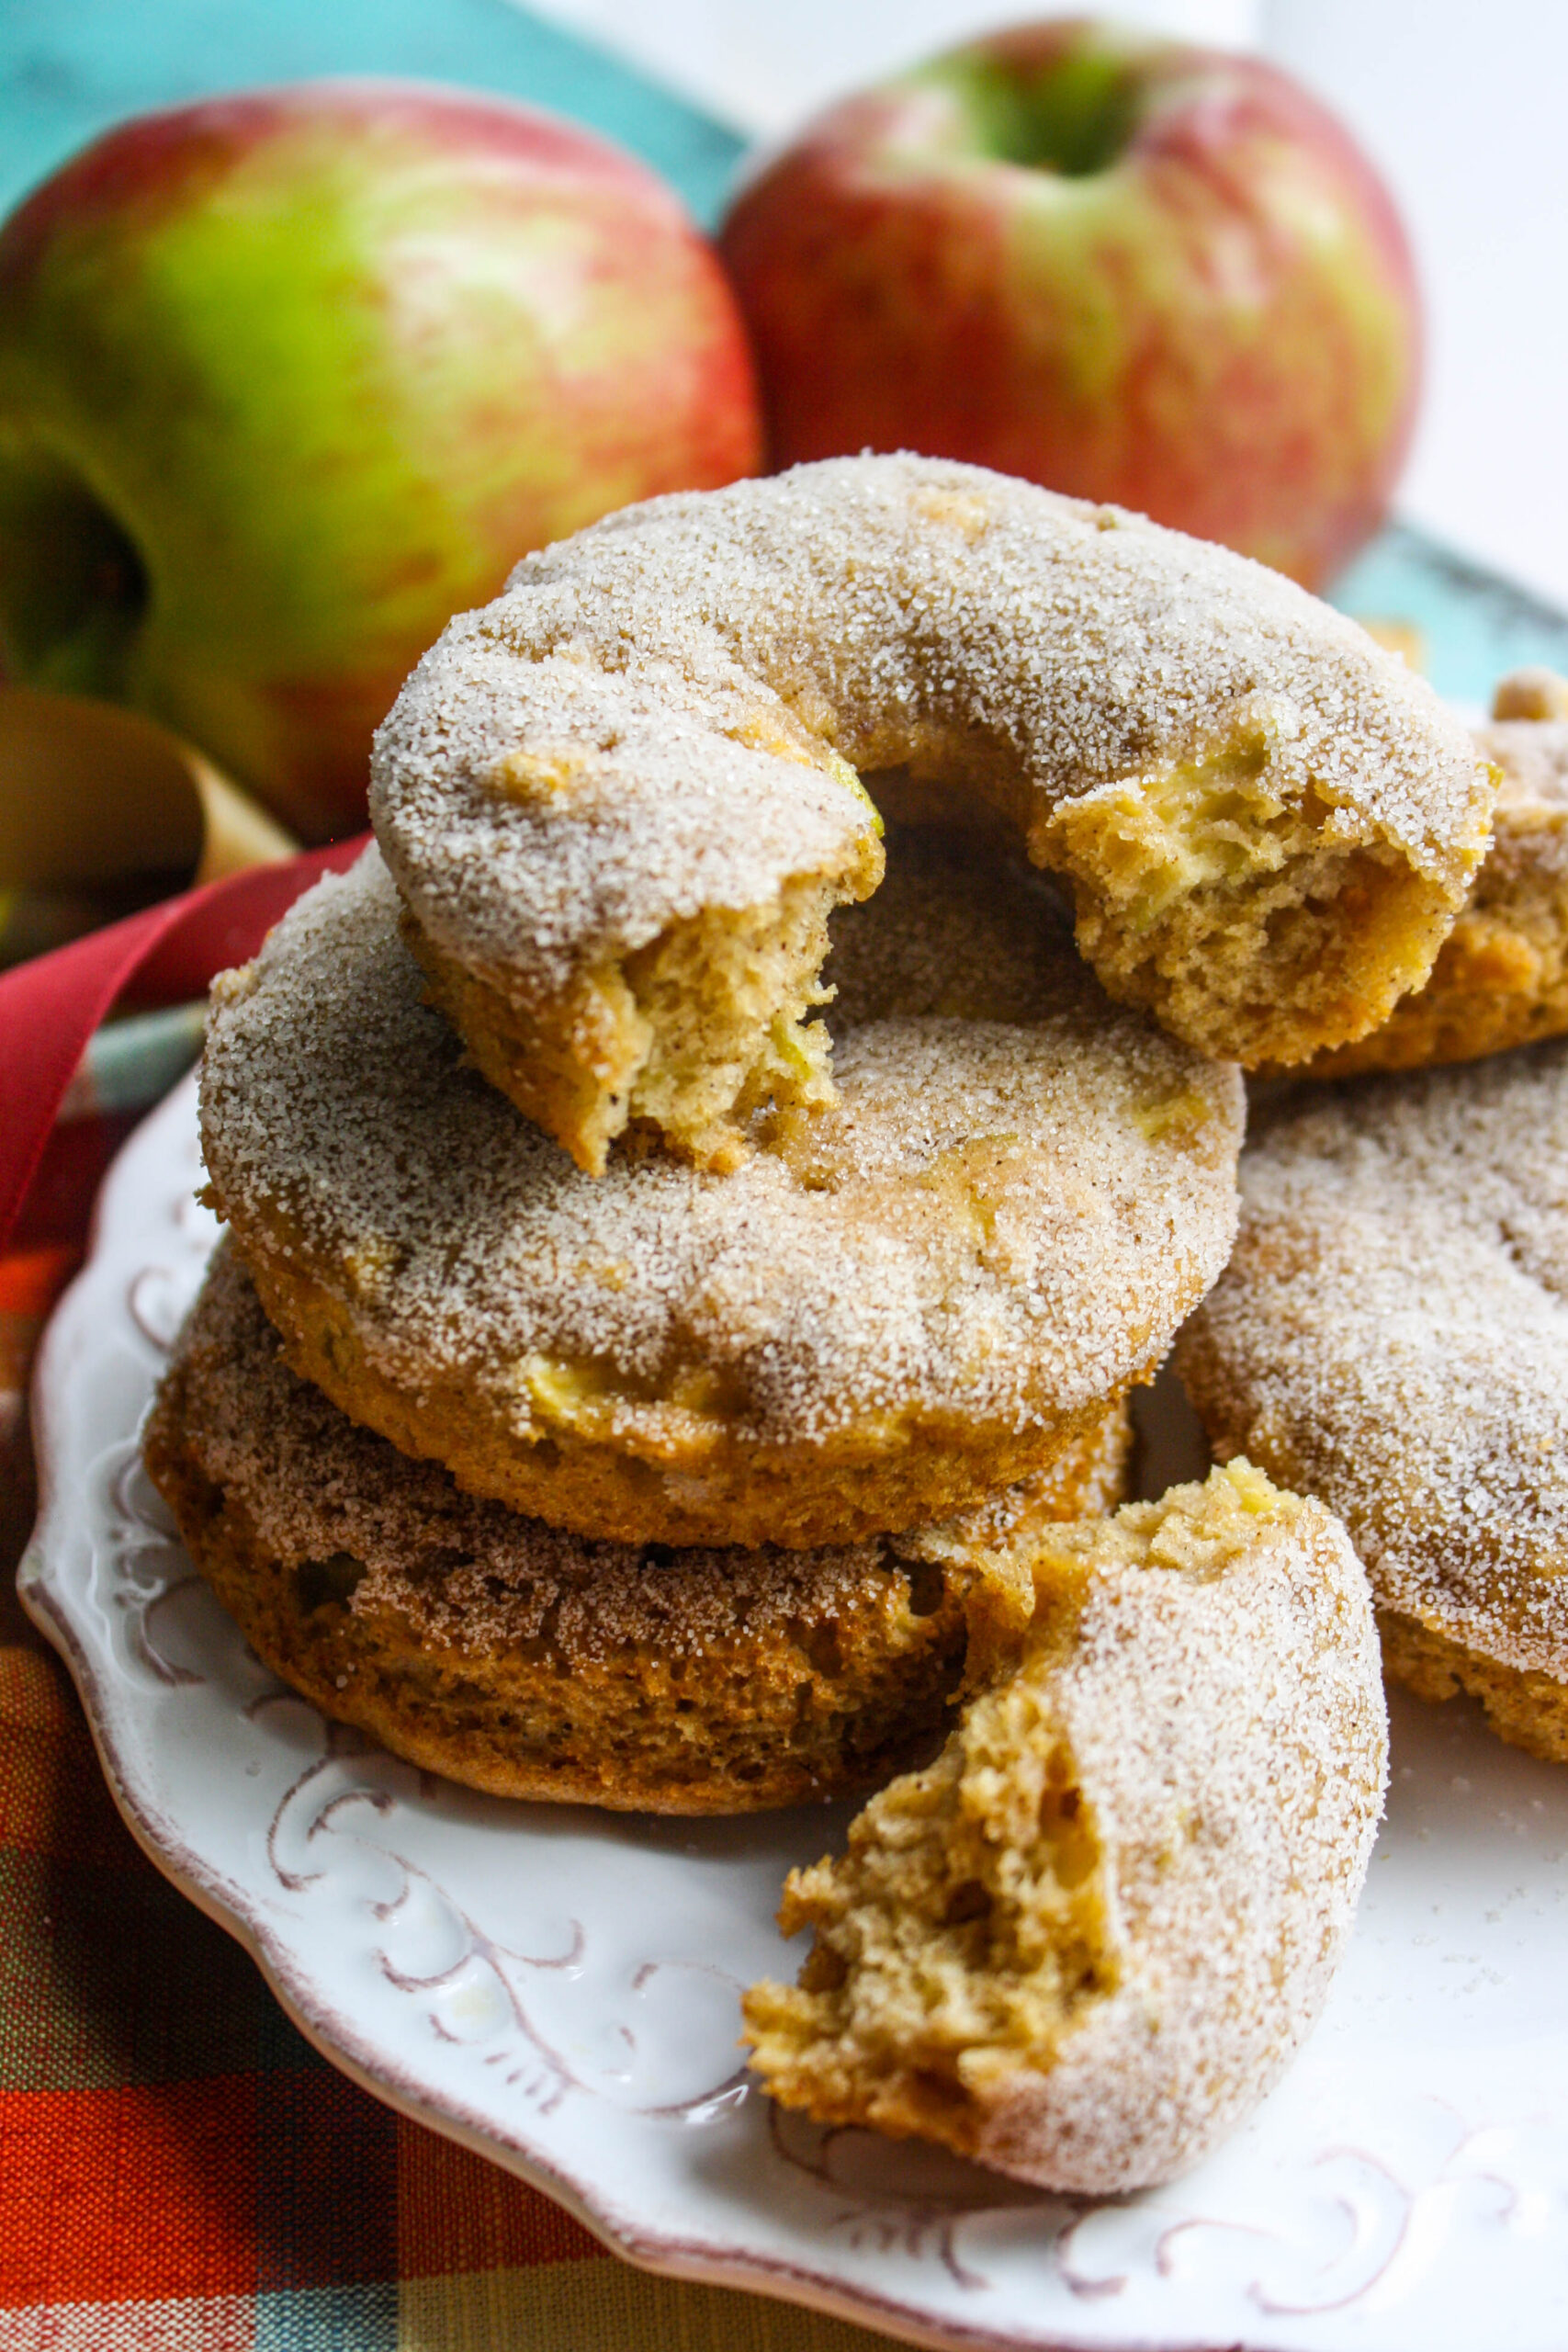 Dig into these Baked Apple Cider Donuts this season for a fun and flavorful treat!